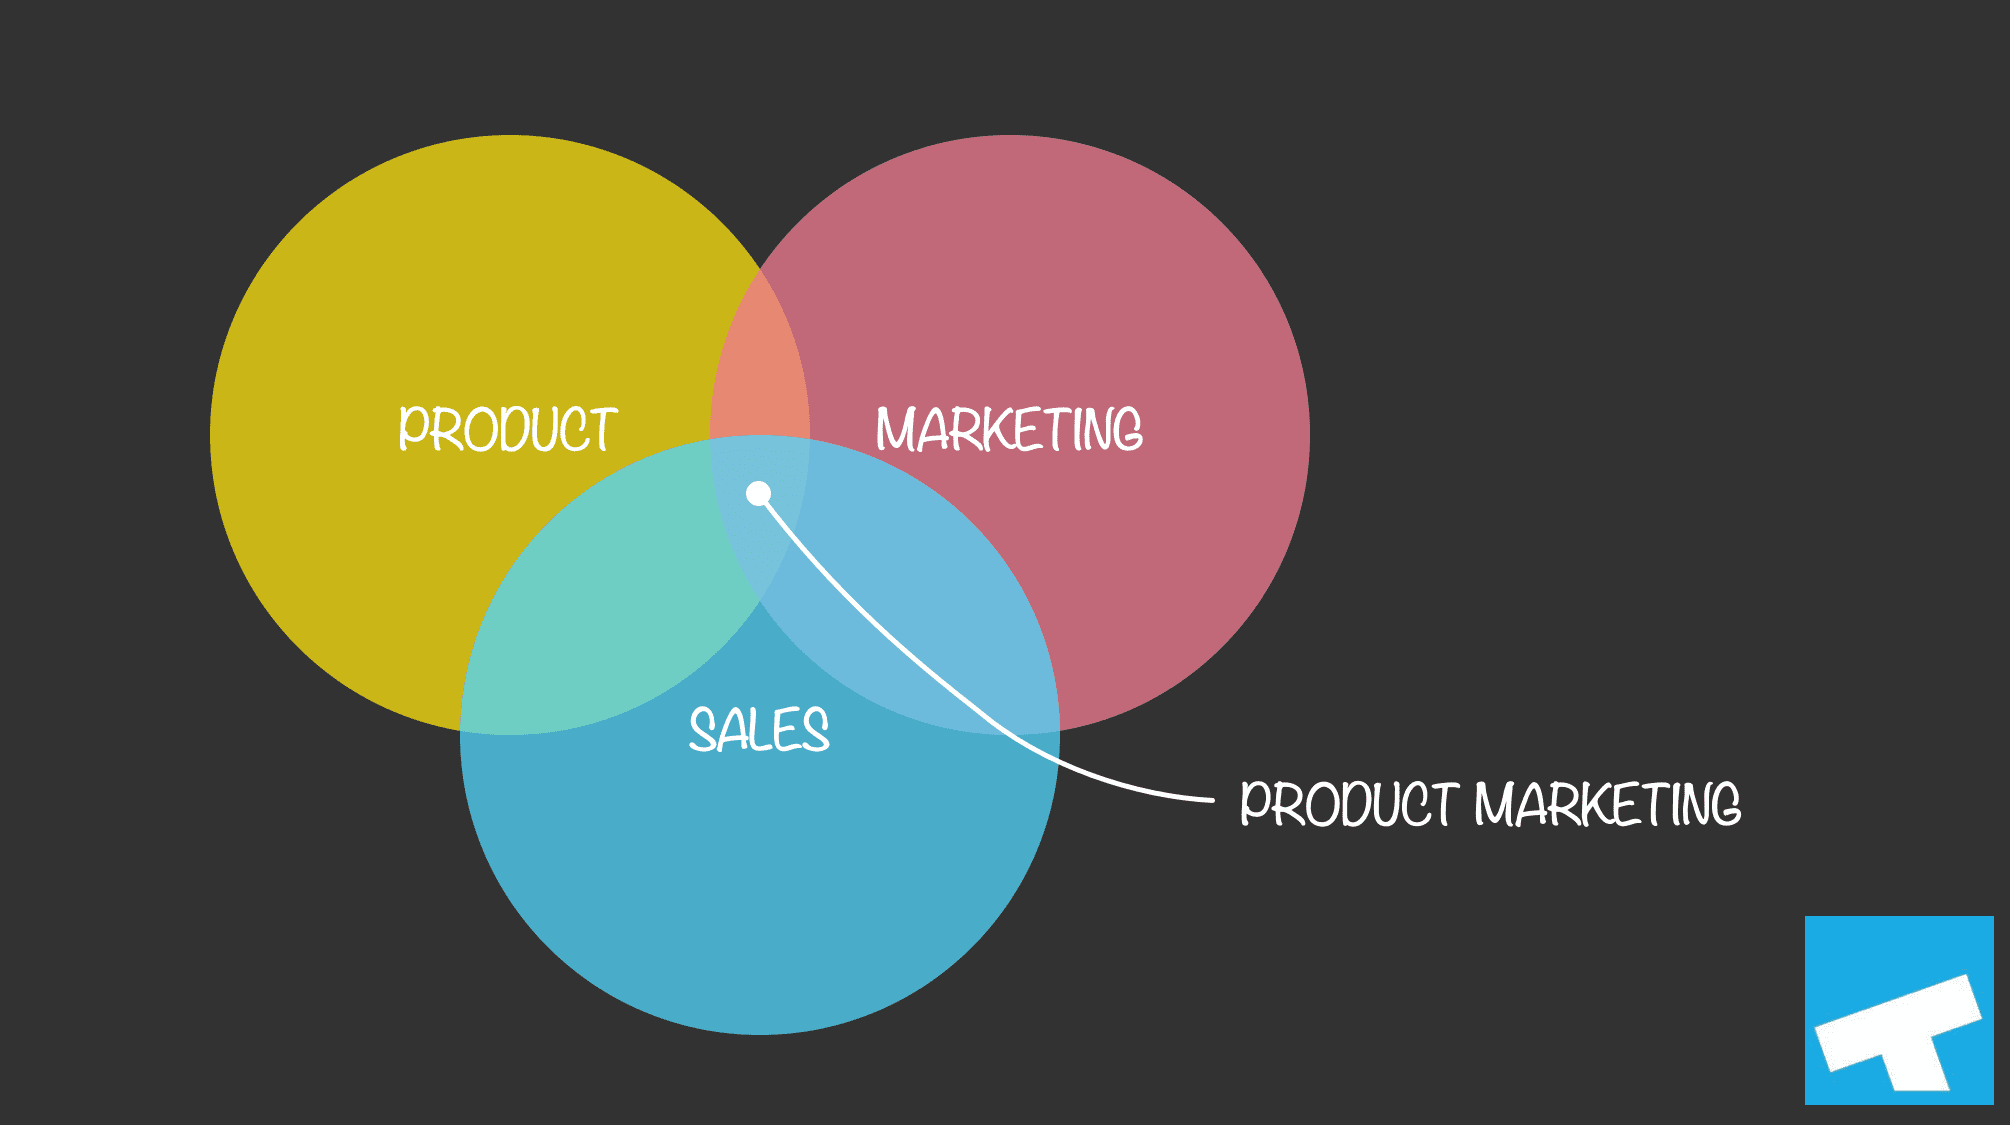 Product Marketing is at the Intersection of Product, Marketing, and Sales Organizations